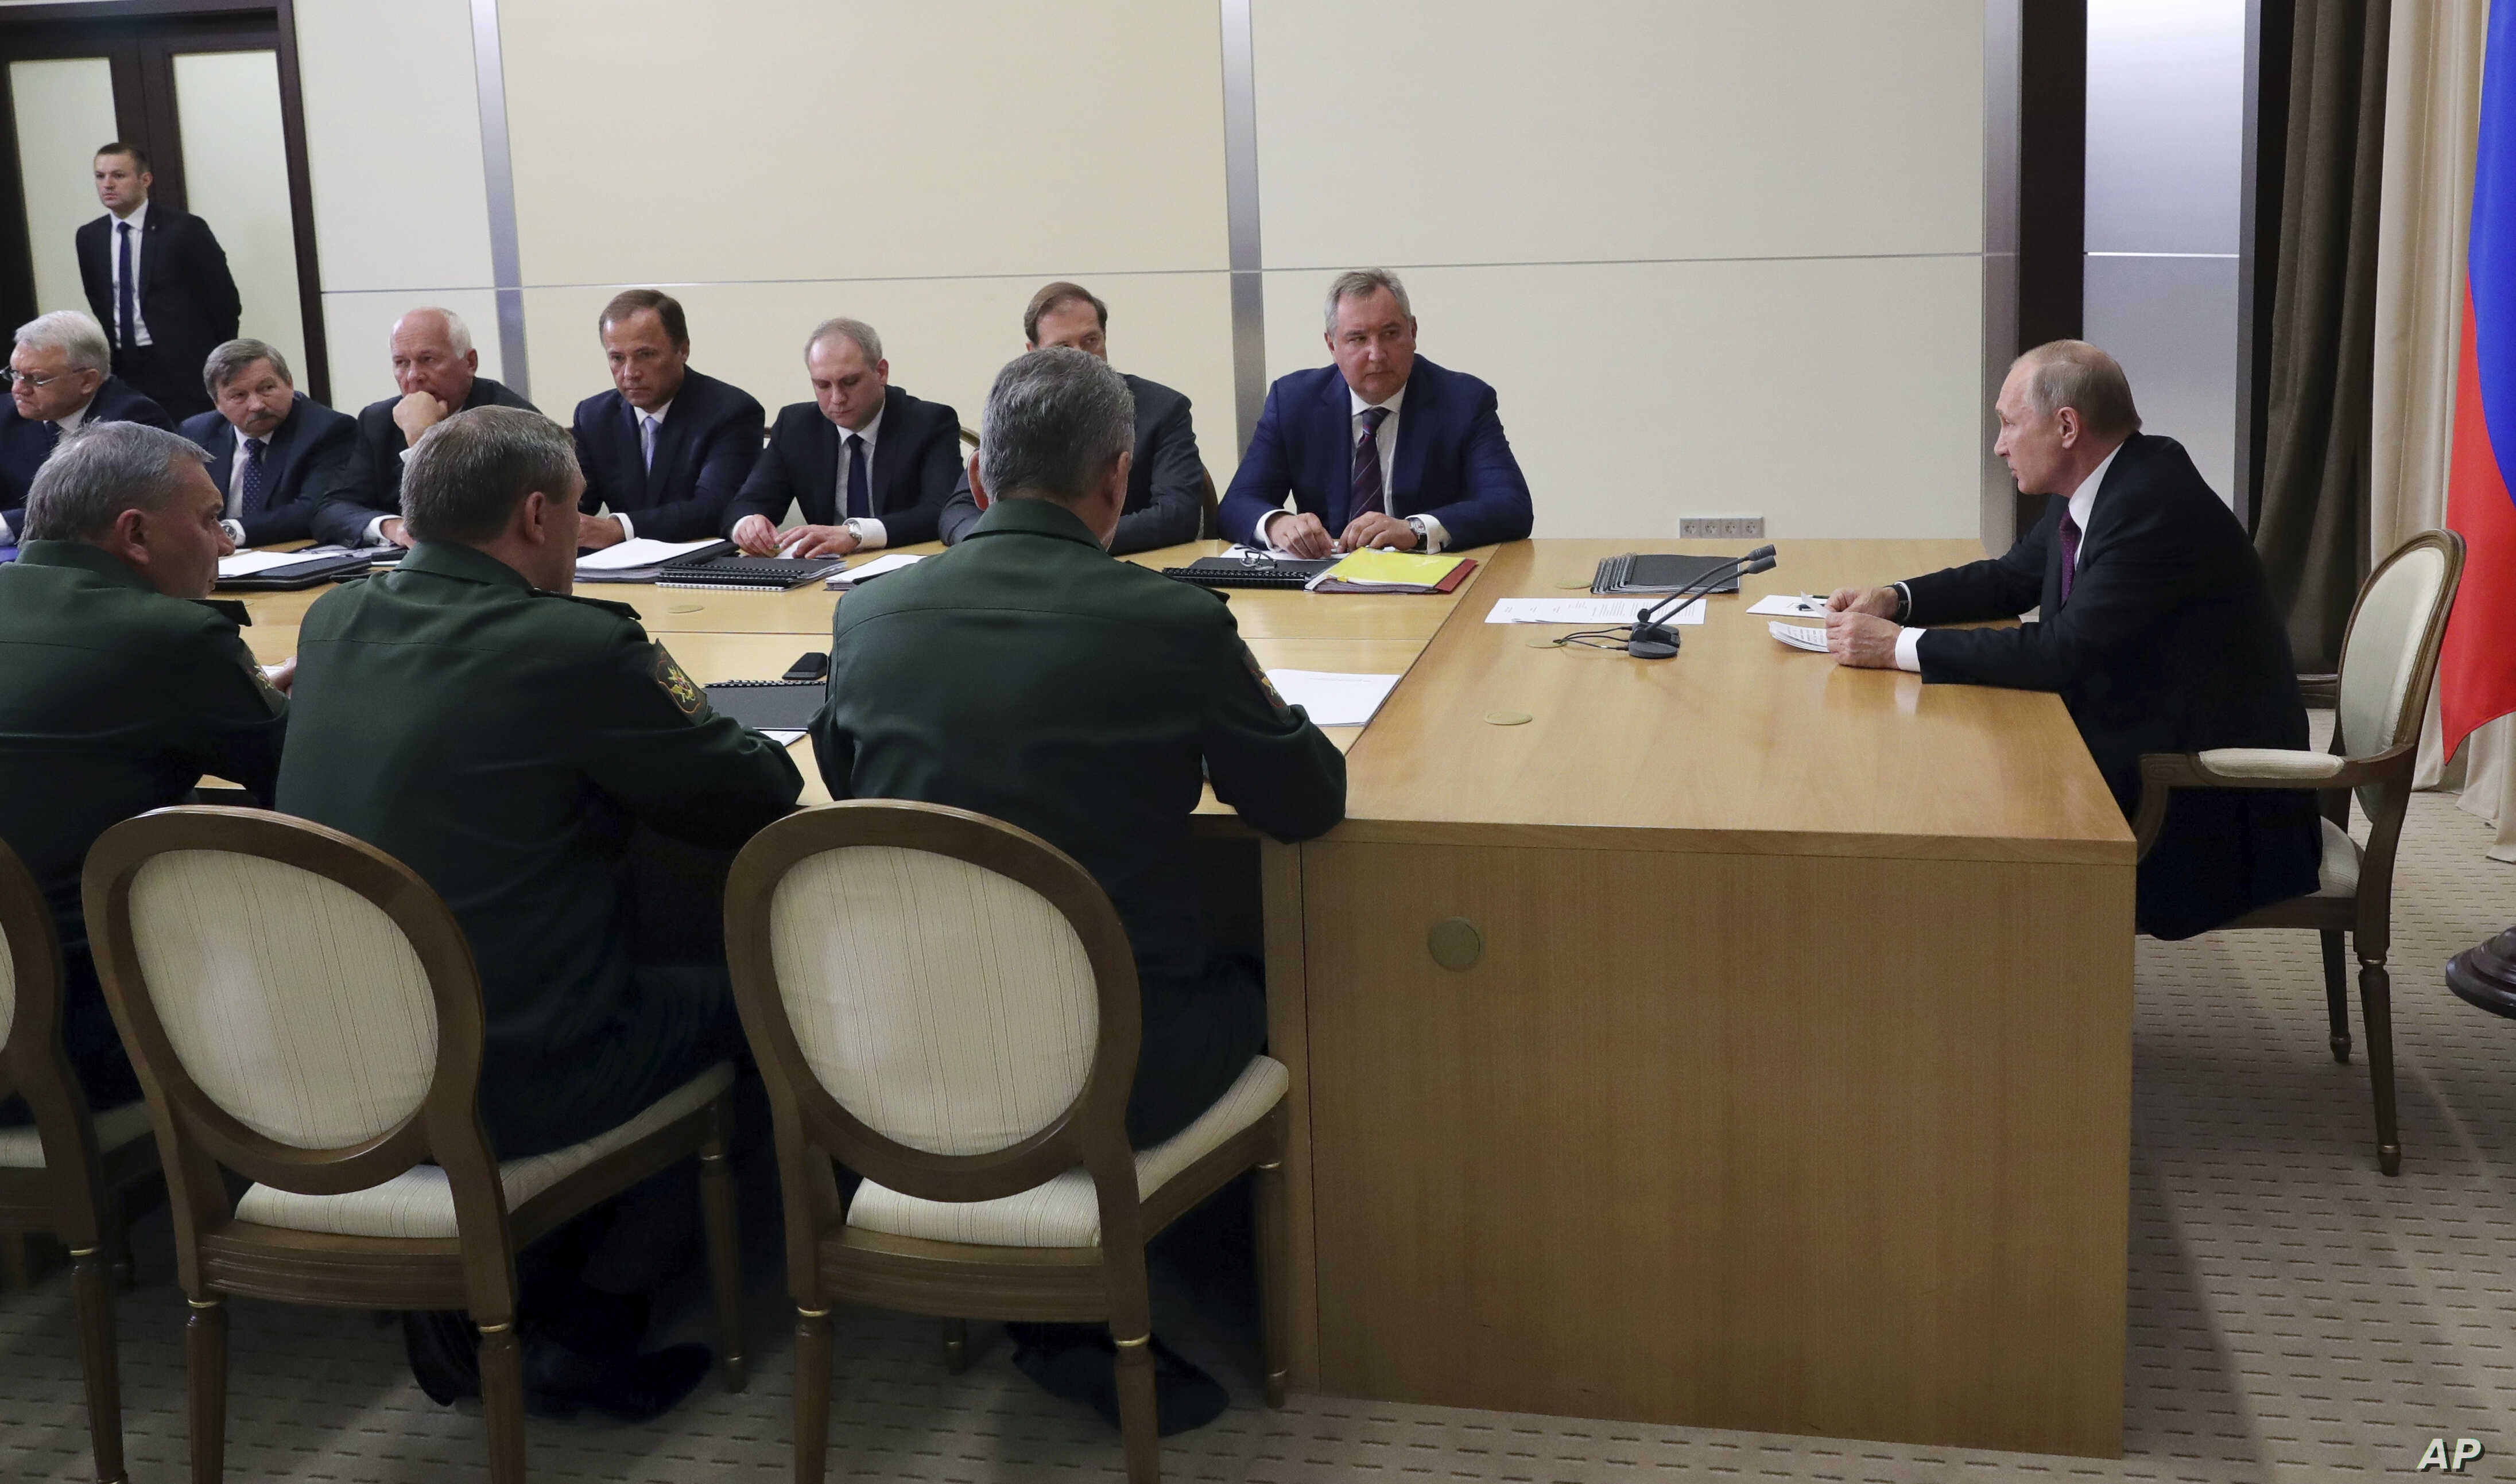 Russian President Vladimir Putin (R) chairs a meeting with the top military brass on military issues in Sochi, Russia, May 17, 2018.